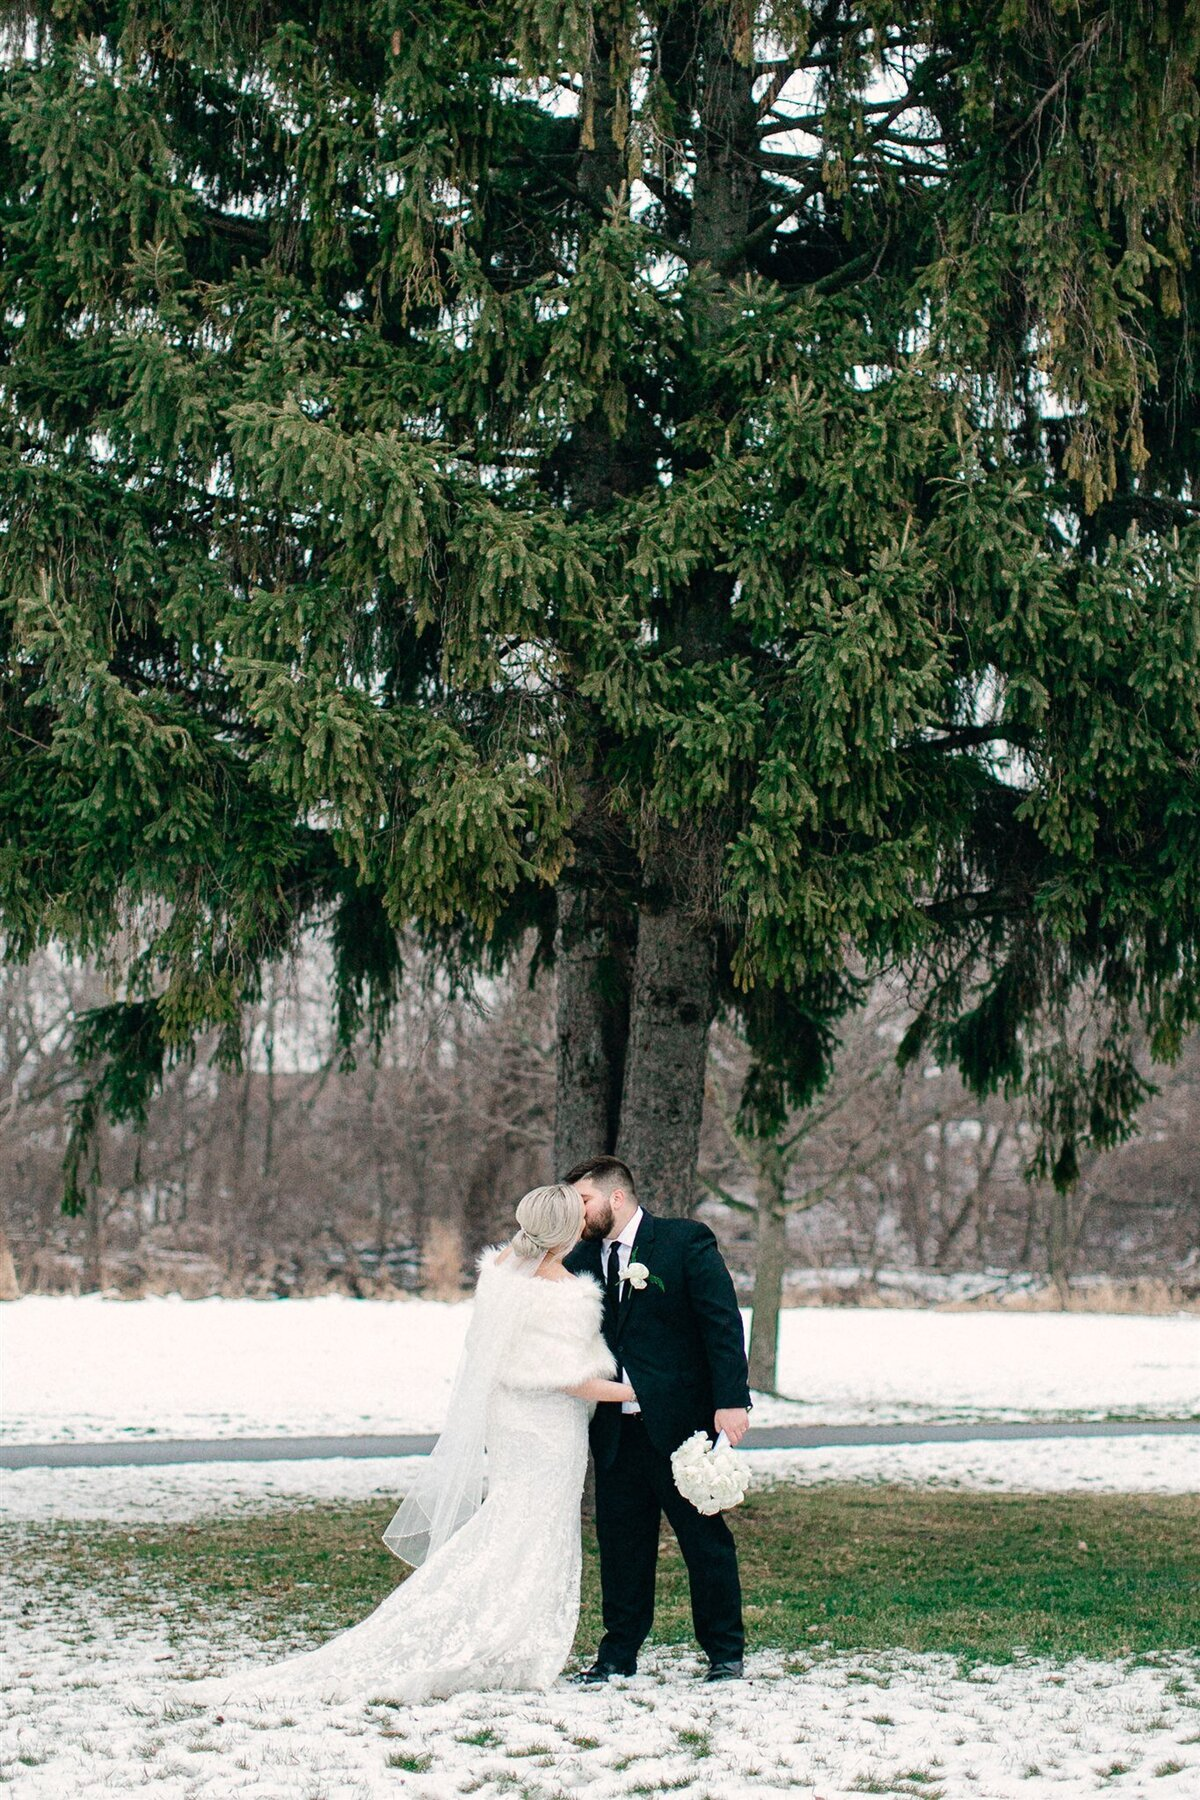 Jessica&Nick_Married_SneakPeak_0006-Copy3